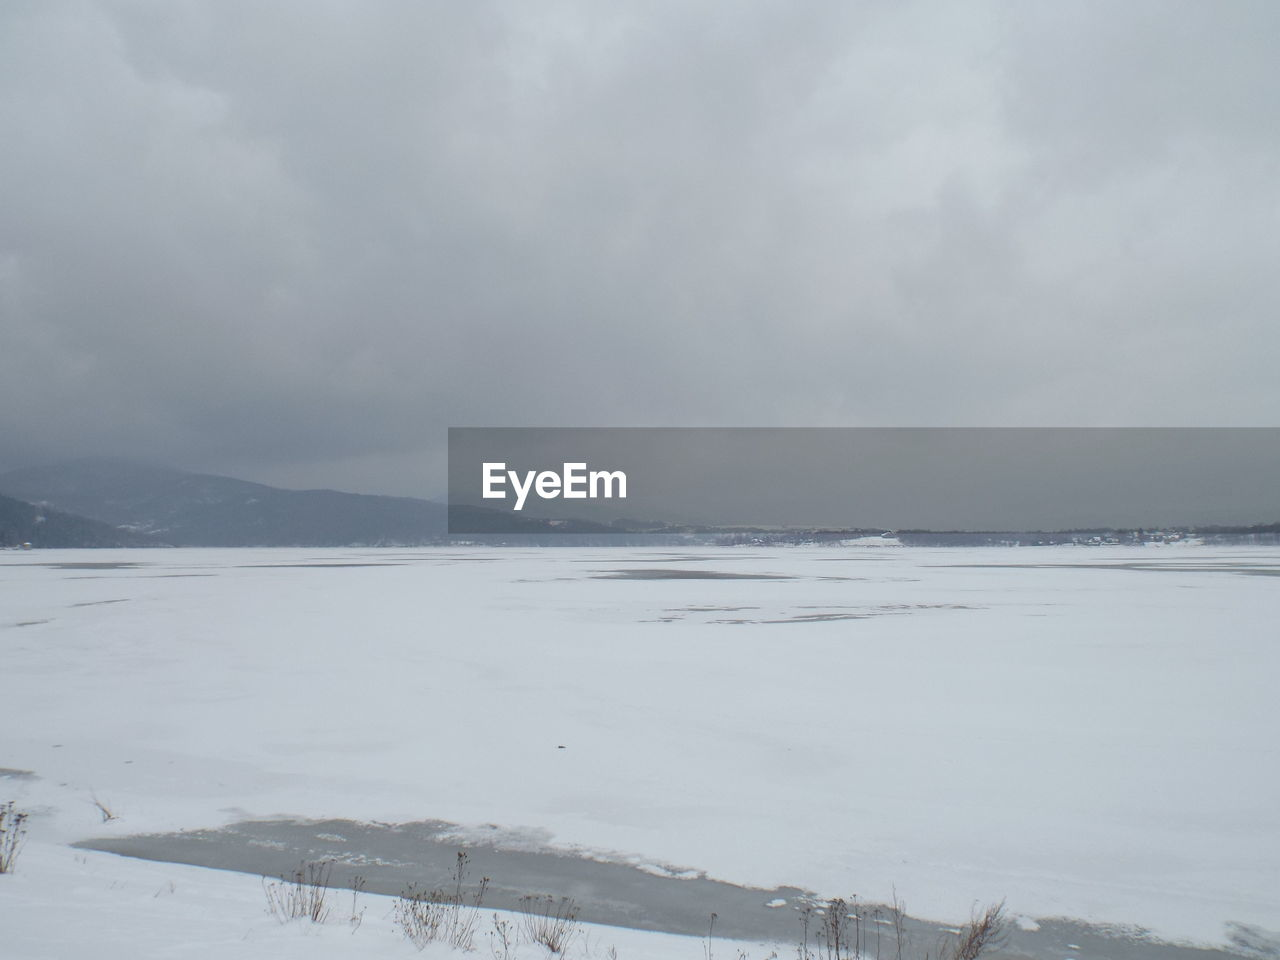 cold temperature, winter, sky, snow, beauty in nature, cloud - sky, tranquility, water, nature, tranquil scene, scenics - nature, no people, environment, day, non-urban scene, outdoors, landscape, white color